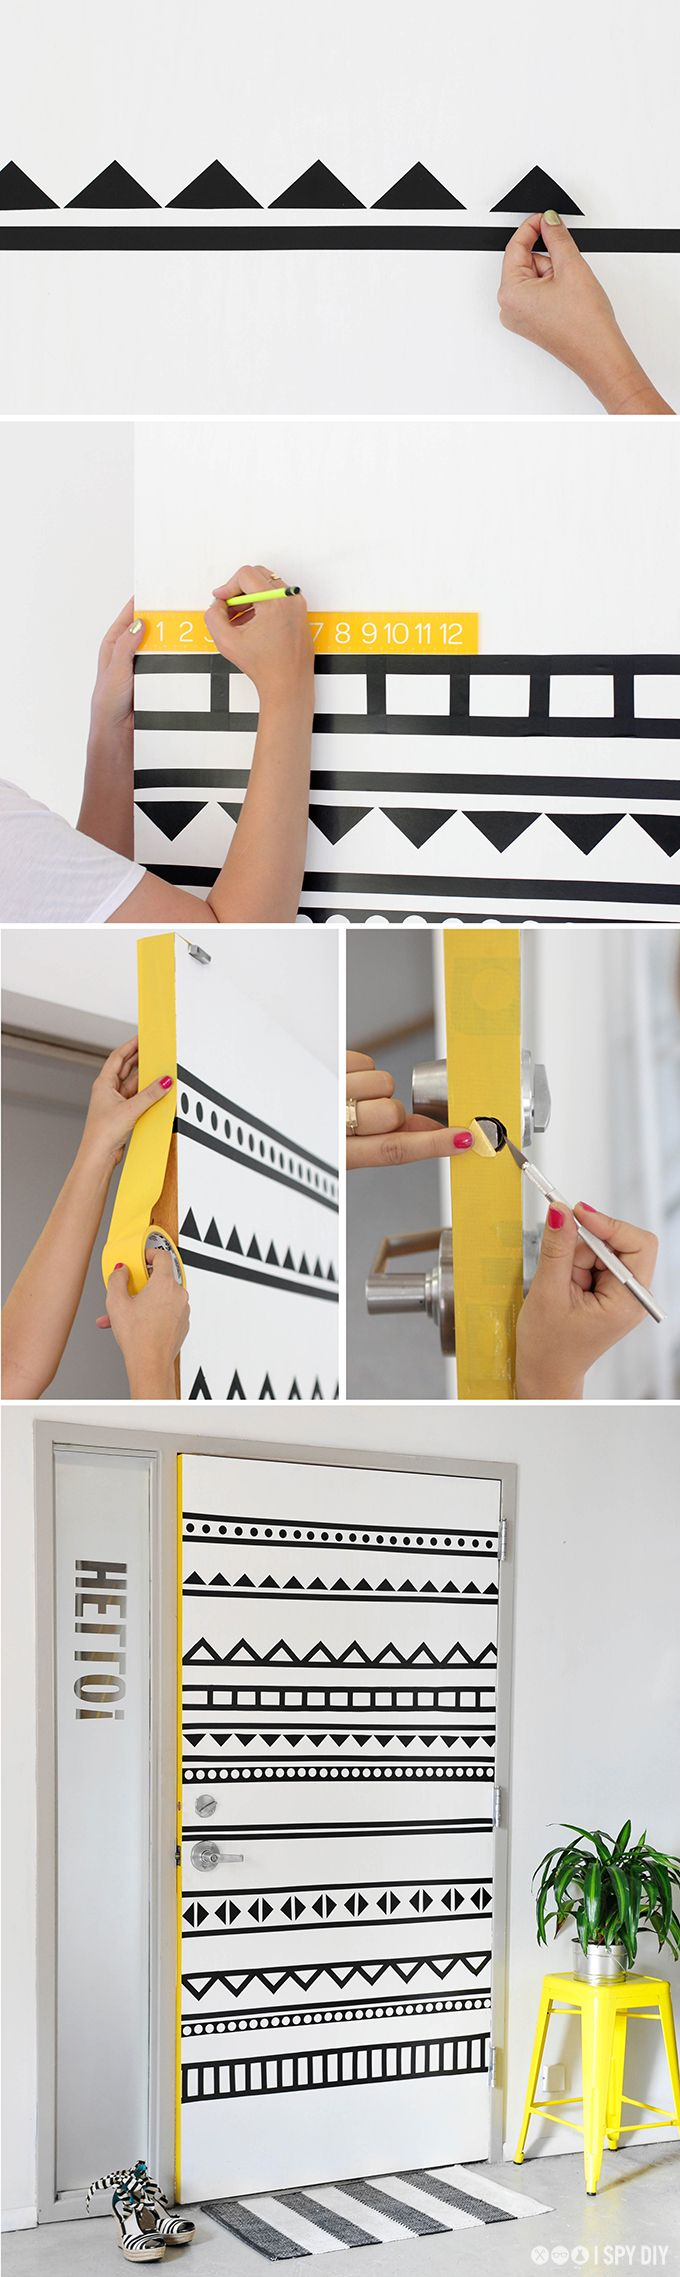 DIY wall design